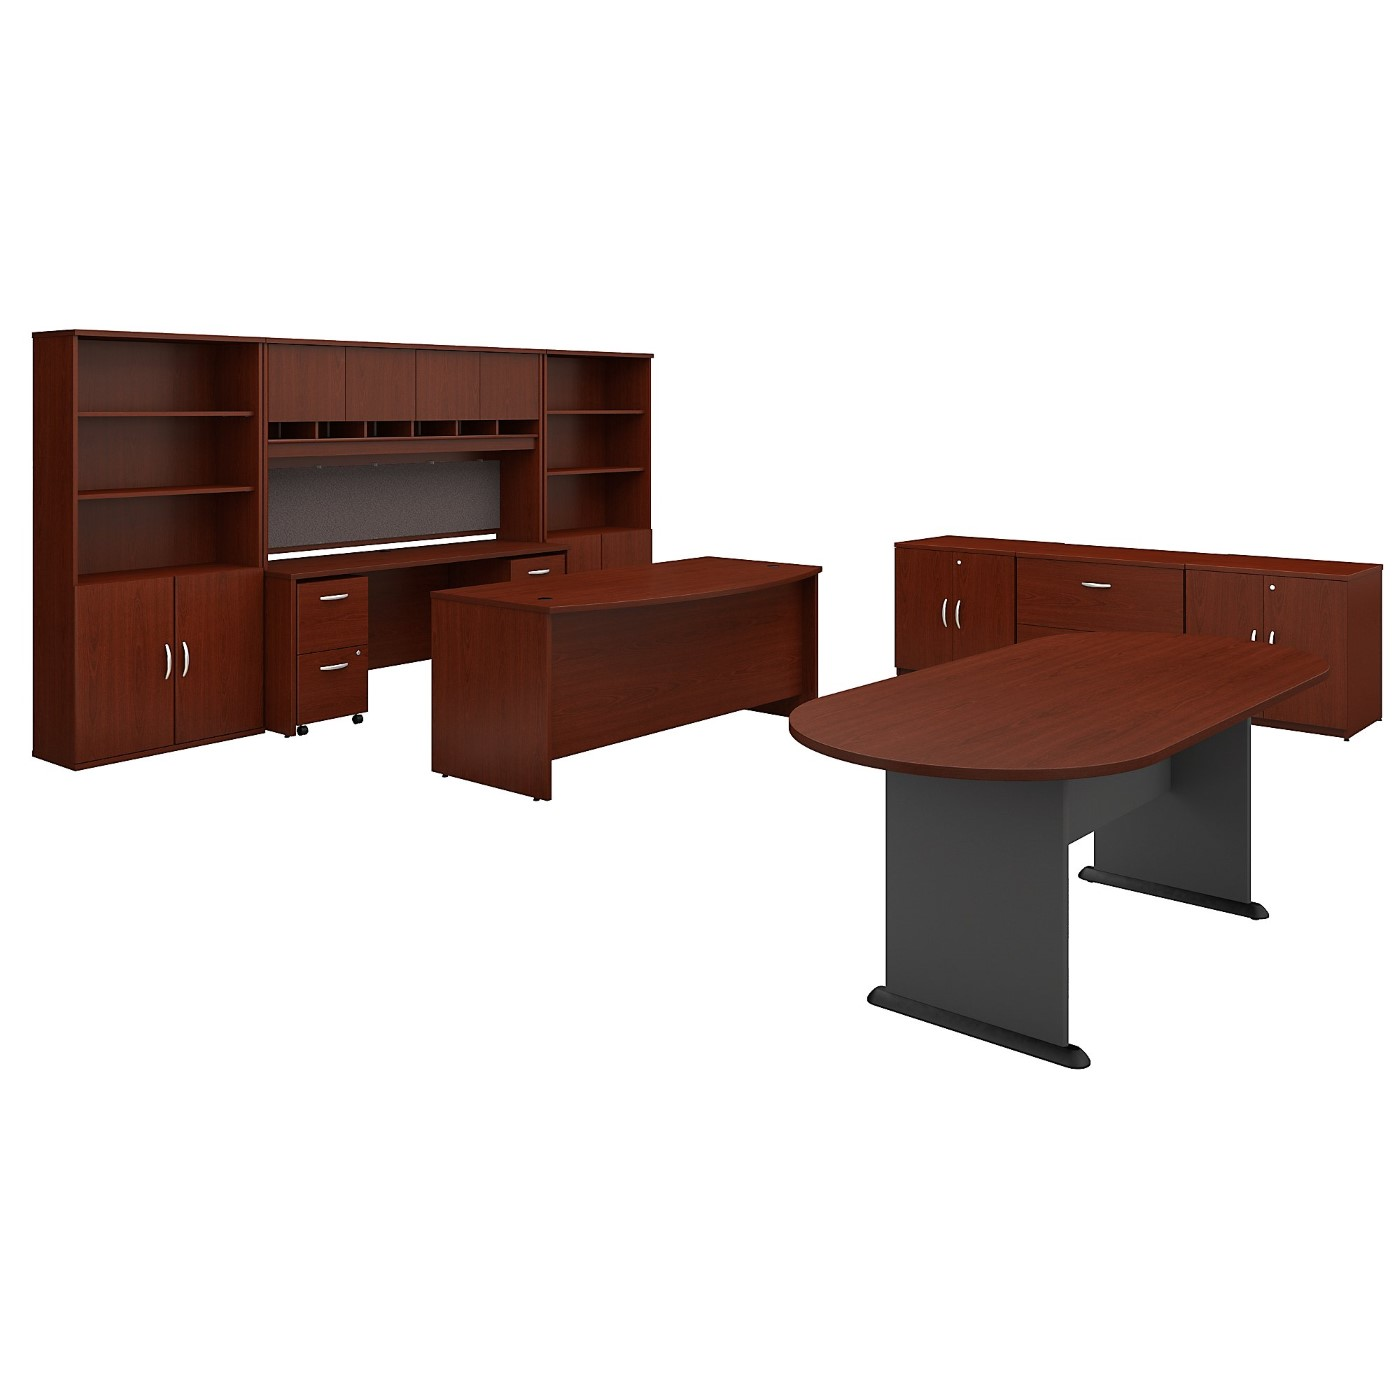 BUSH BUSINESS FURNITURE SERIES C EXECUTIVE OFFICE SUITE WITH STORAGE AND CONFERENCE TABLE. FREE SHIPPING SALE DEDUCT 10% MORE ENTER '10percent' IN COUPON CODE BOX WHILE CHECKING OUT.